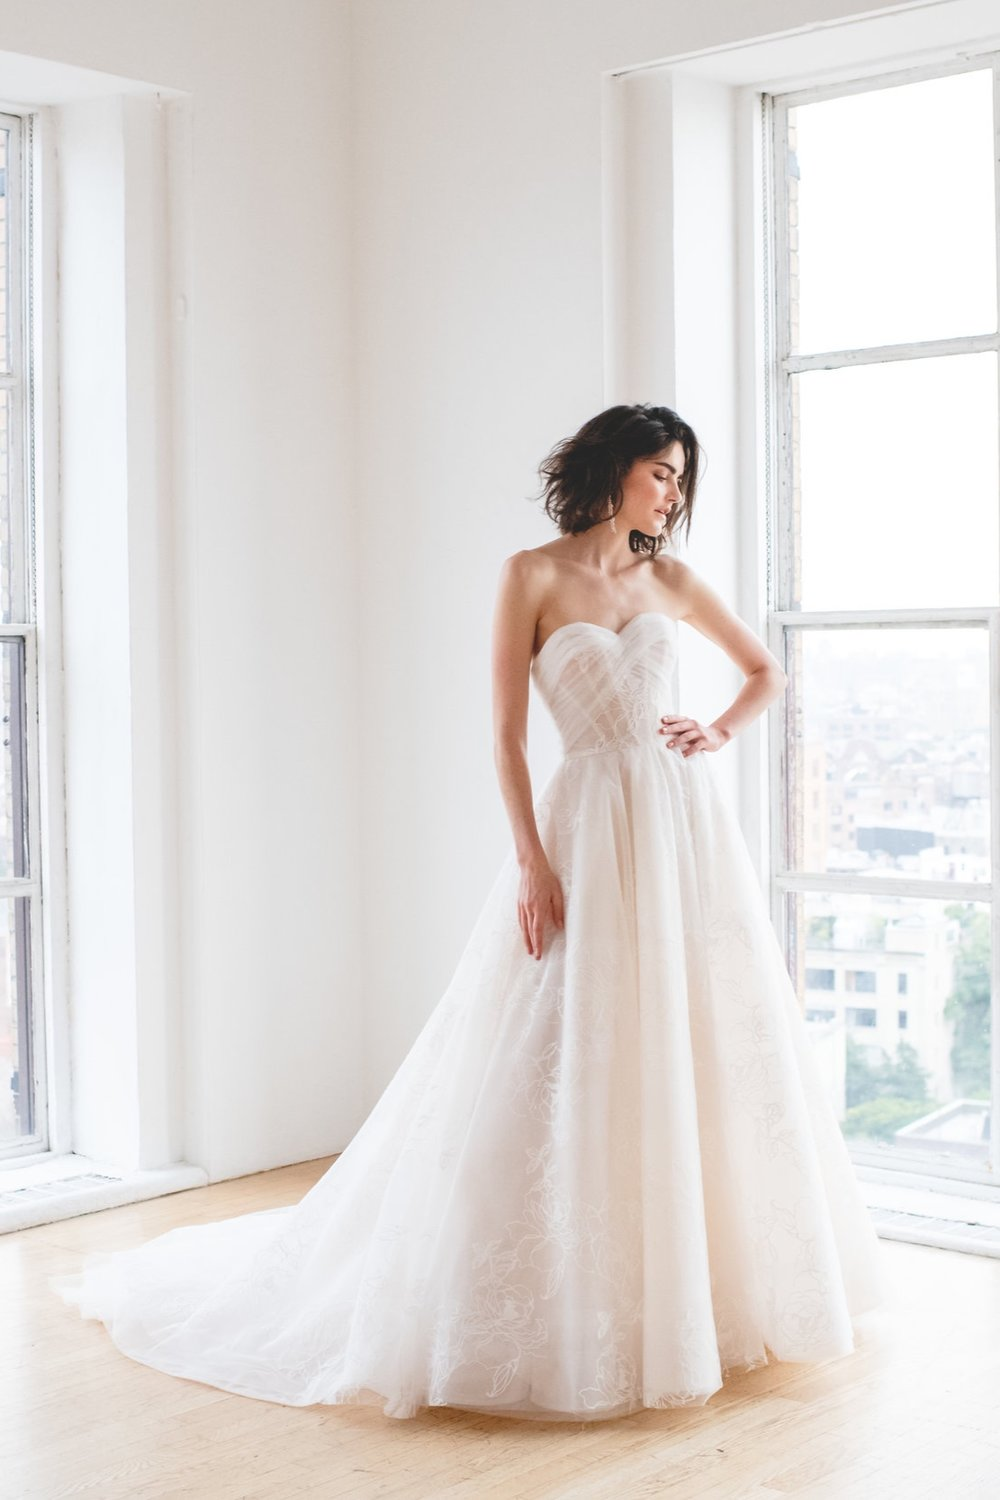 Ines by Ines Di Santo Bridal Fall 2019   JOONY    INQUIRE